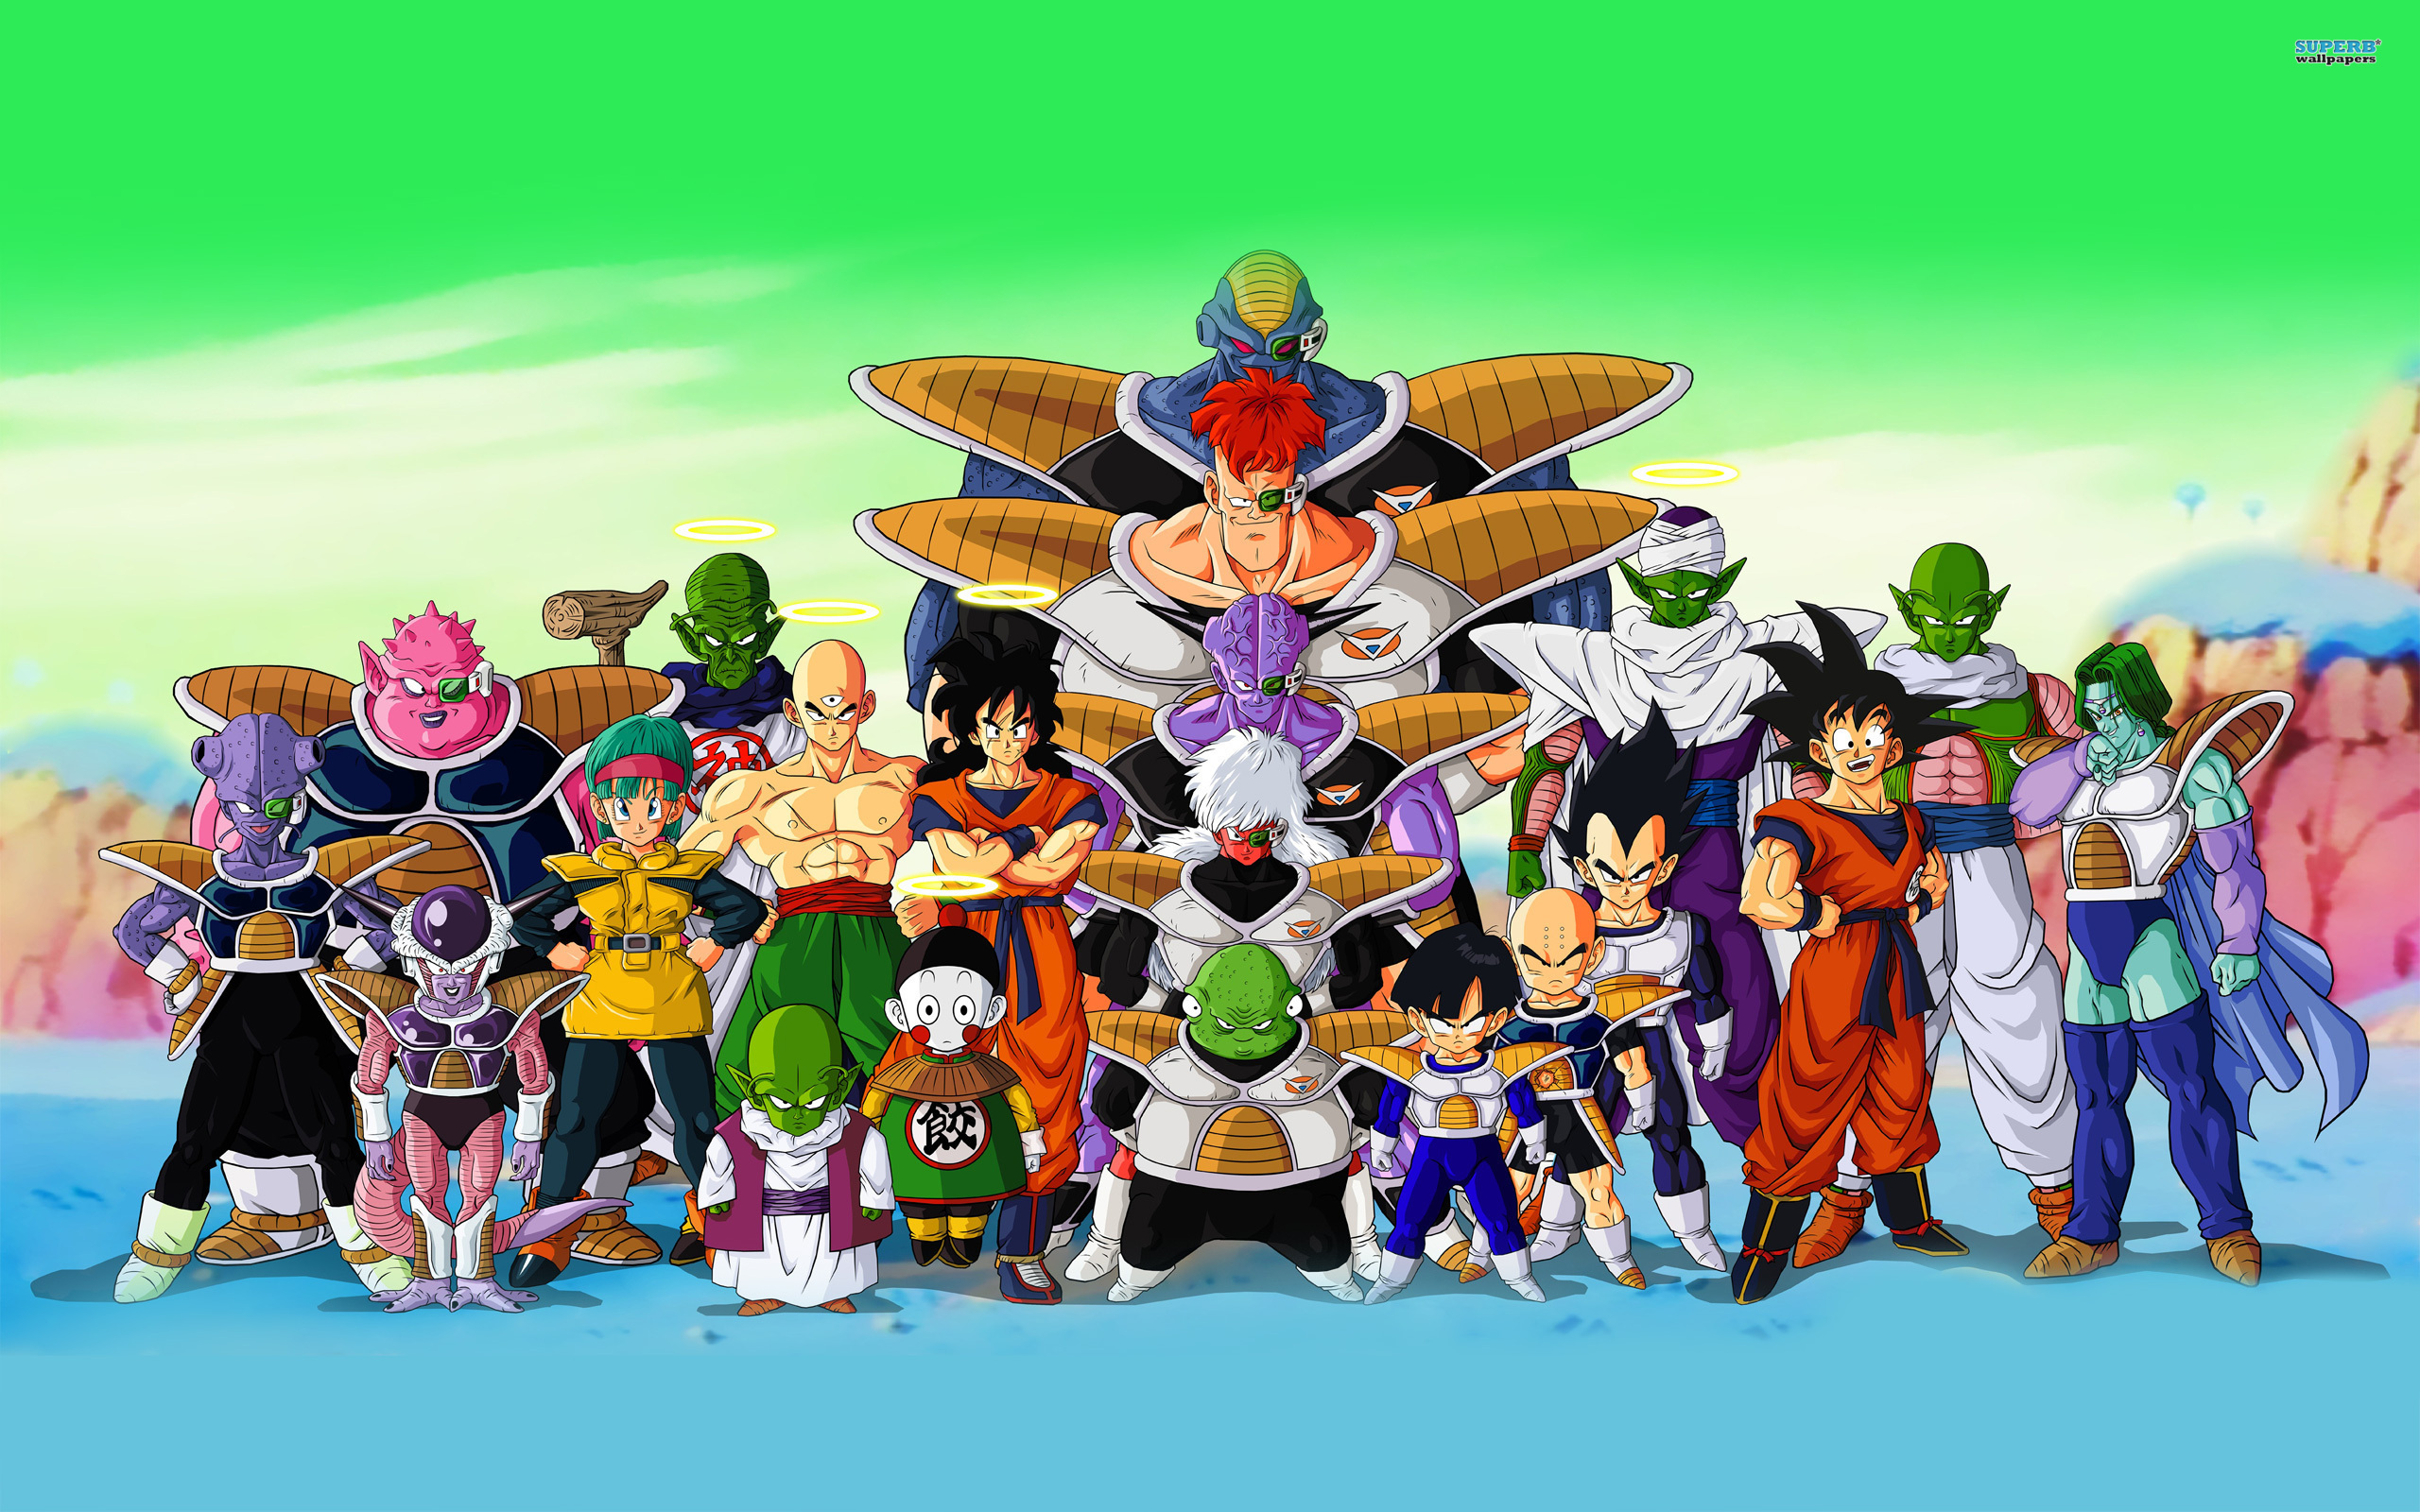 Dragon ball pc naver tree lifekura voltagebd